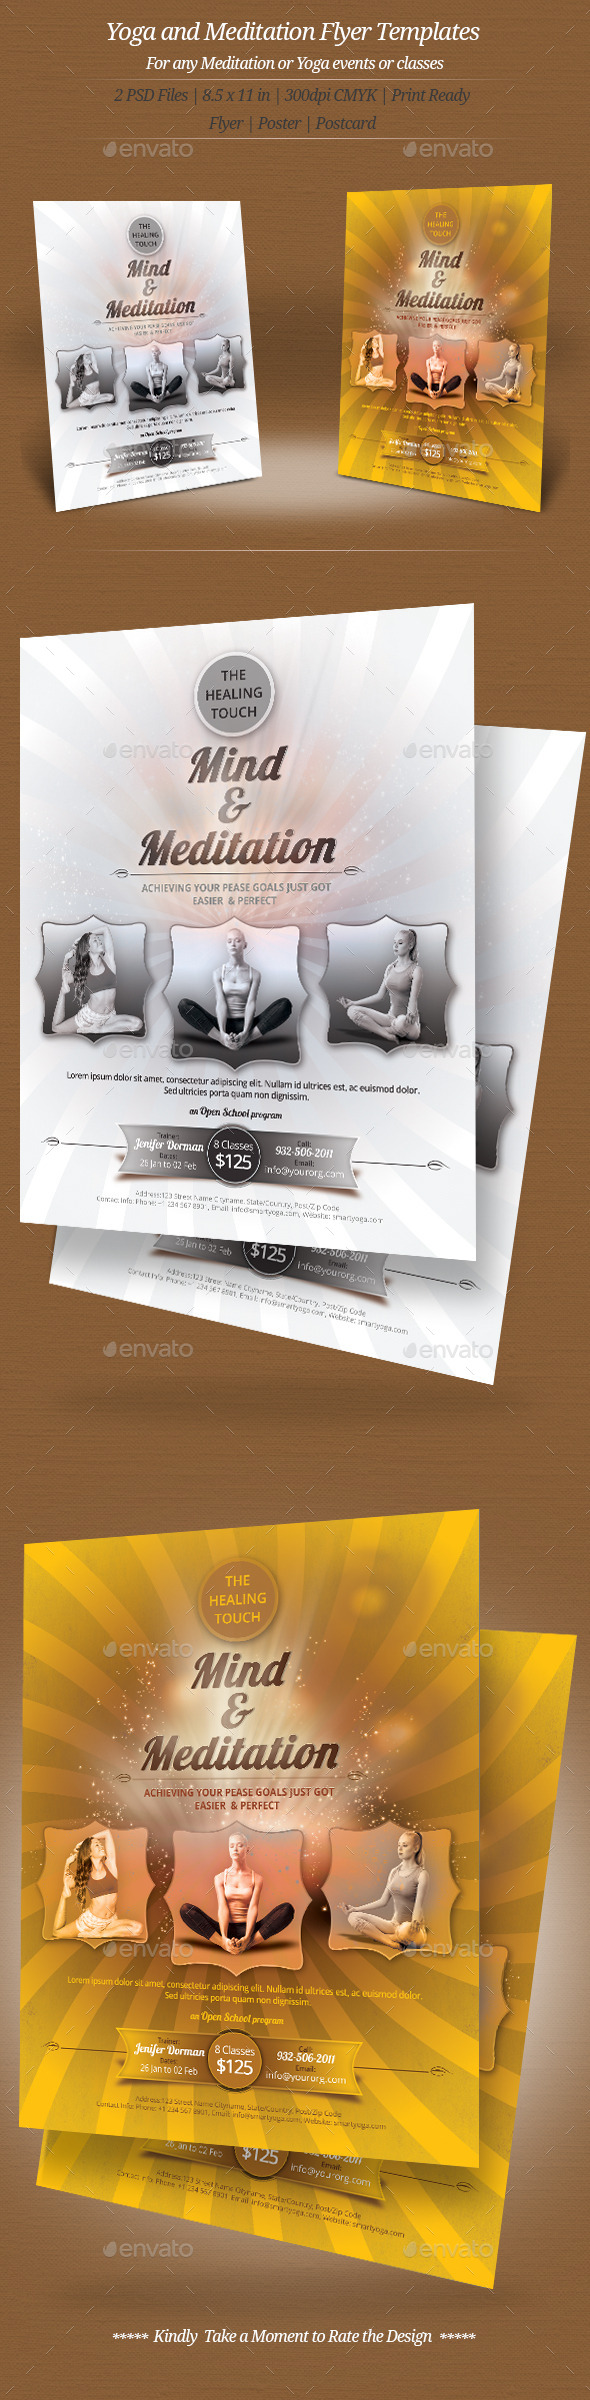 Yoga and Meditation Flyer Templates - Sports Events